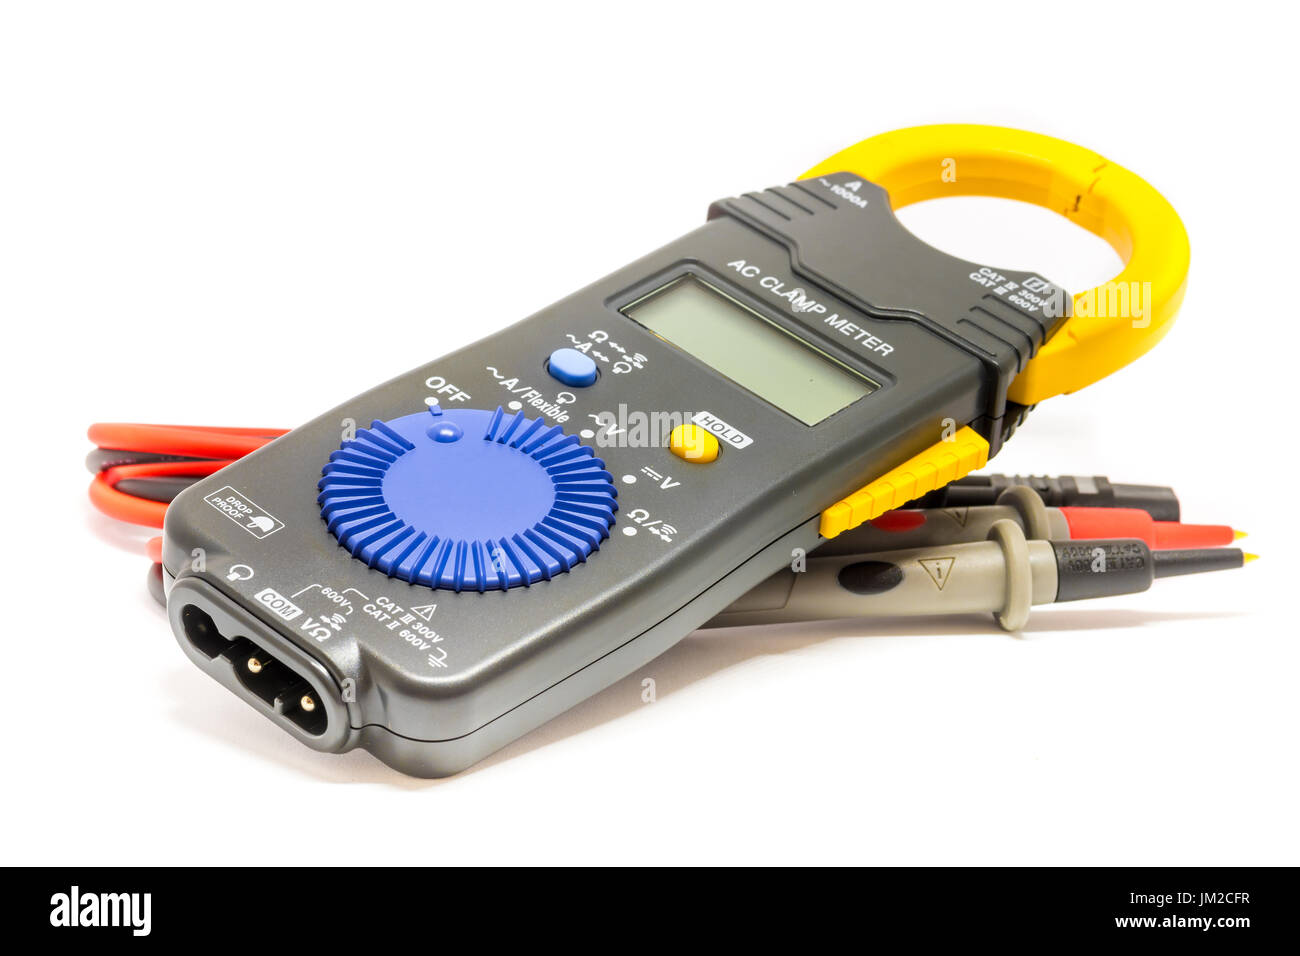 Electric  digital multimeter. Clamp digital meter on the white background - Stock Image